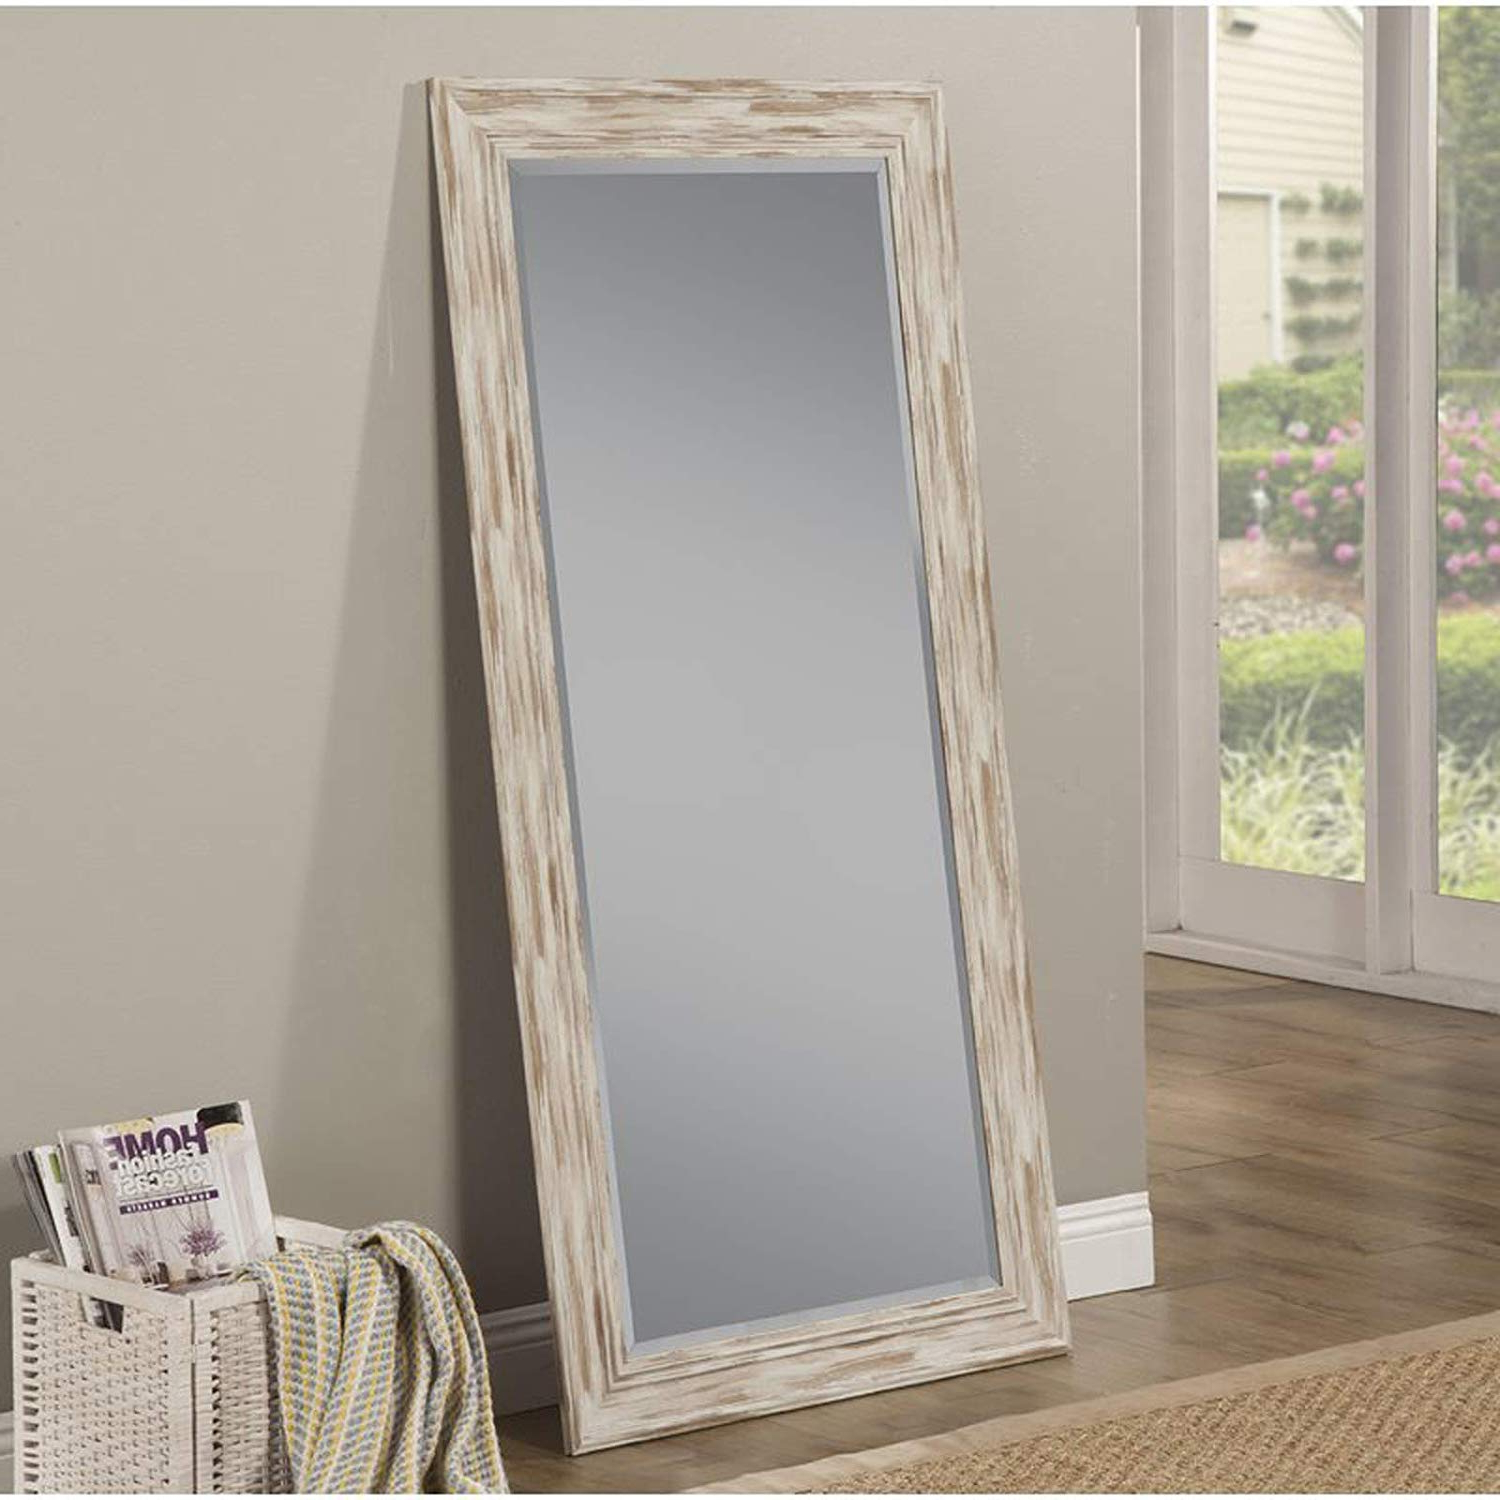 White Full Length Wall Mirrors With Regard To Well Liked Full Length Wall Mirror – Rustic Rectangular Shape Horizontal & Vertical Mirror – Can Be Use In Living Room, Bedroom, Entryway Or Bathroom (antique (View 5 of 20)